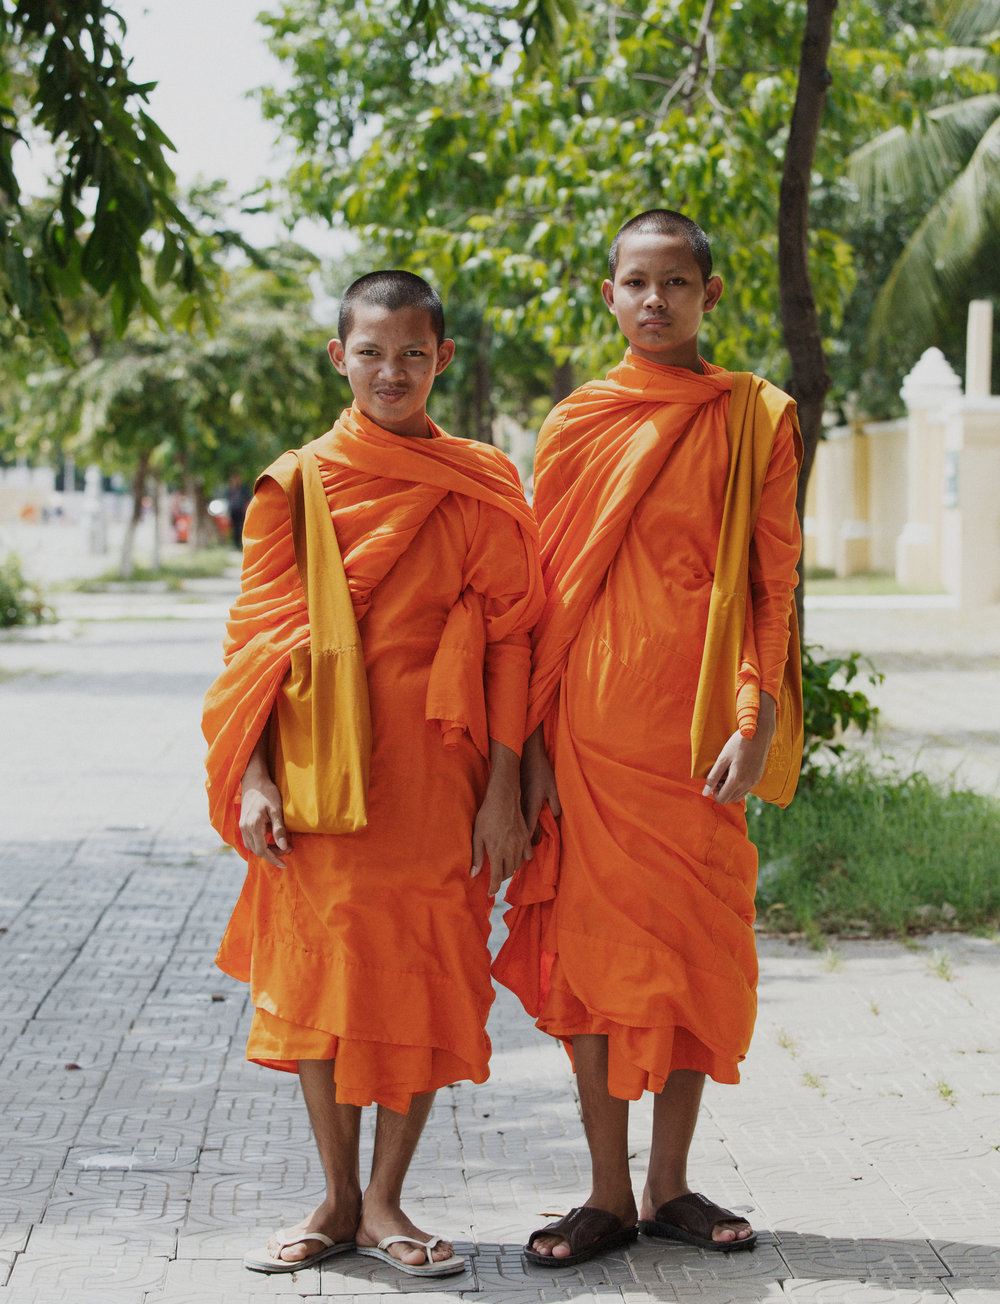 TRAVEL_MONKS-2S.jpg